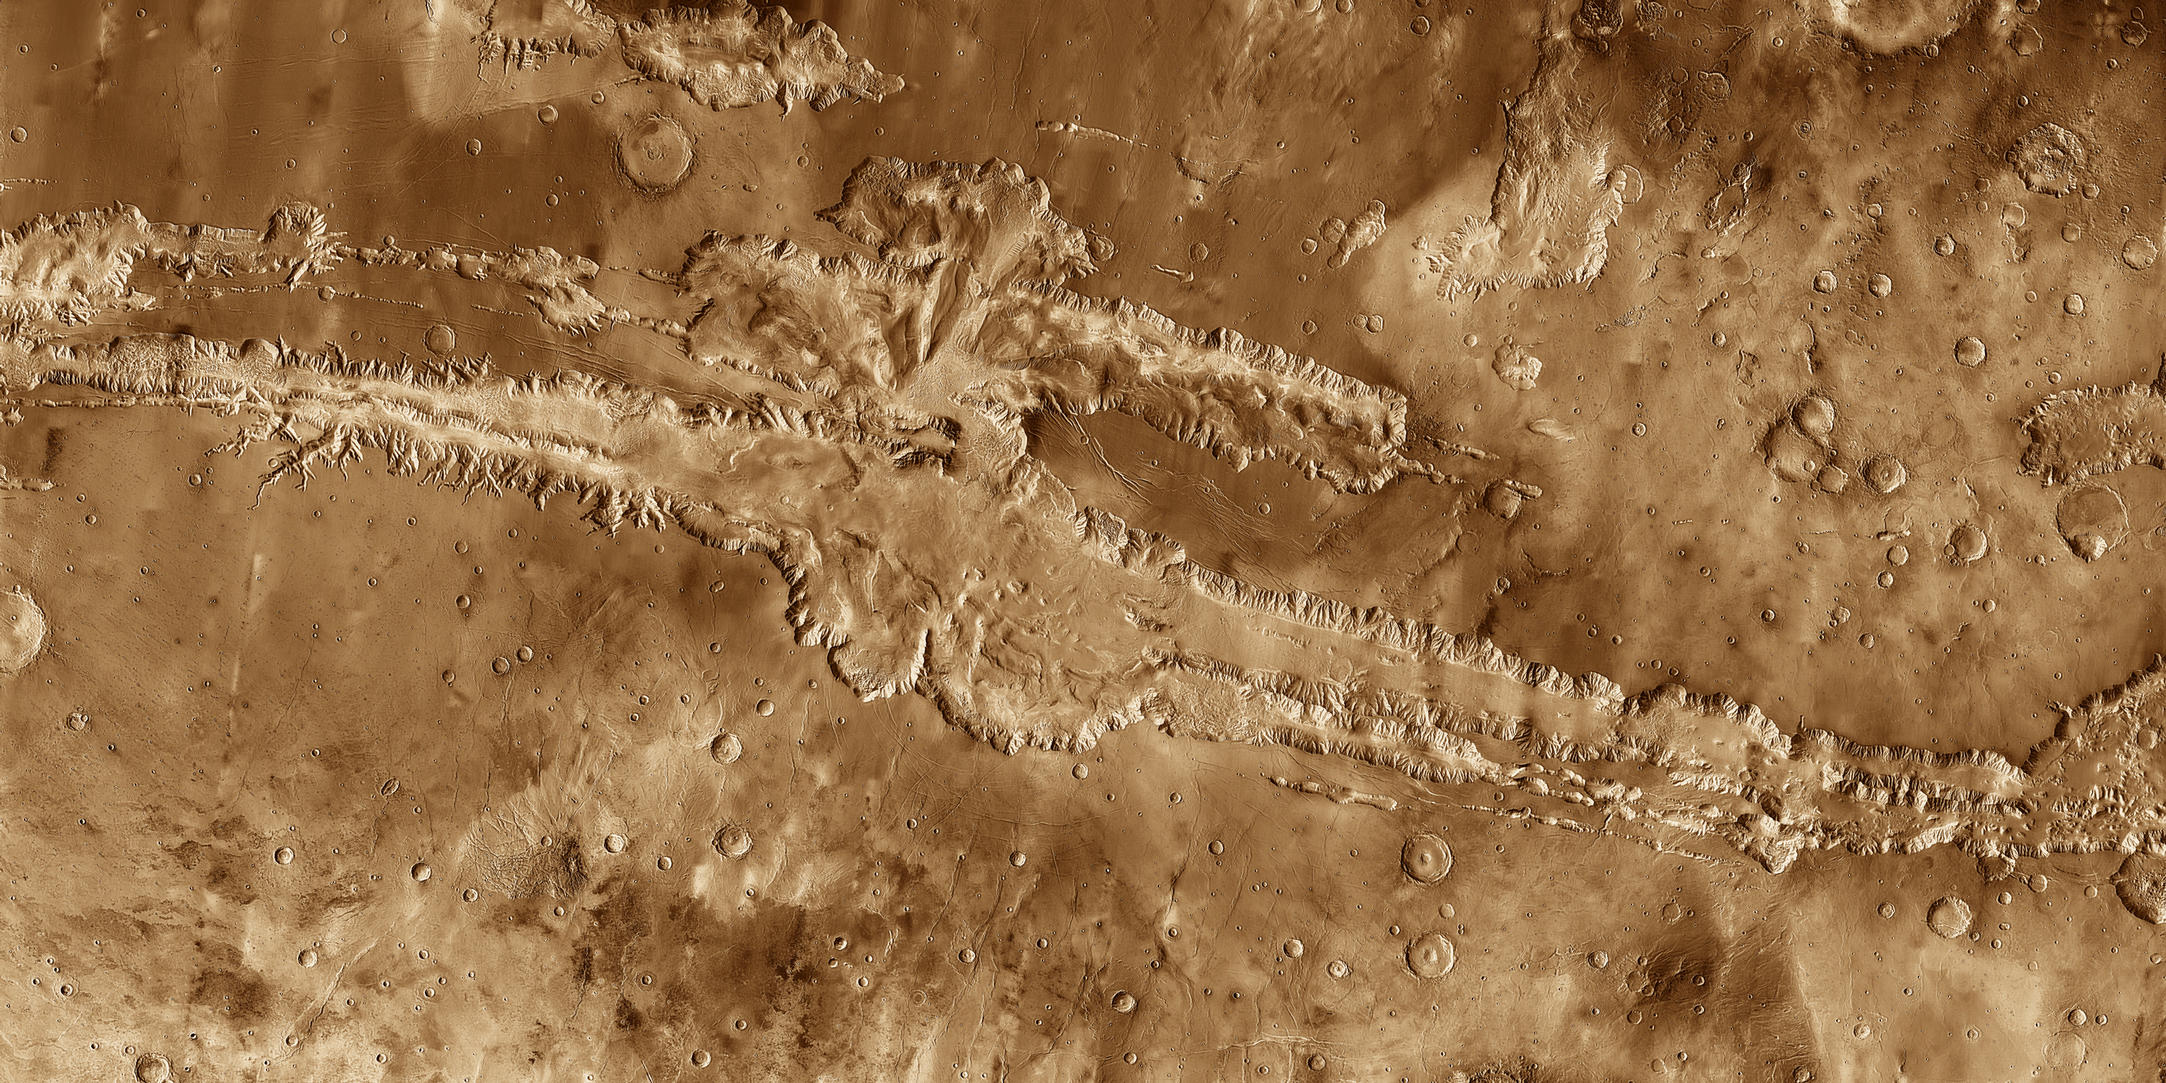 This mosaic image of Valles Marineris - colored to resemble the martian surface - comes from the Thermal Emission Imaging System (THEMIS), a visible-light and infrared-sensing camera on NASA's Mars Odyssey orbiter.